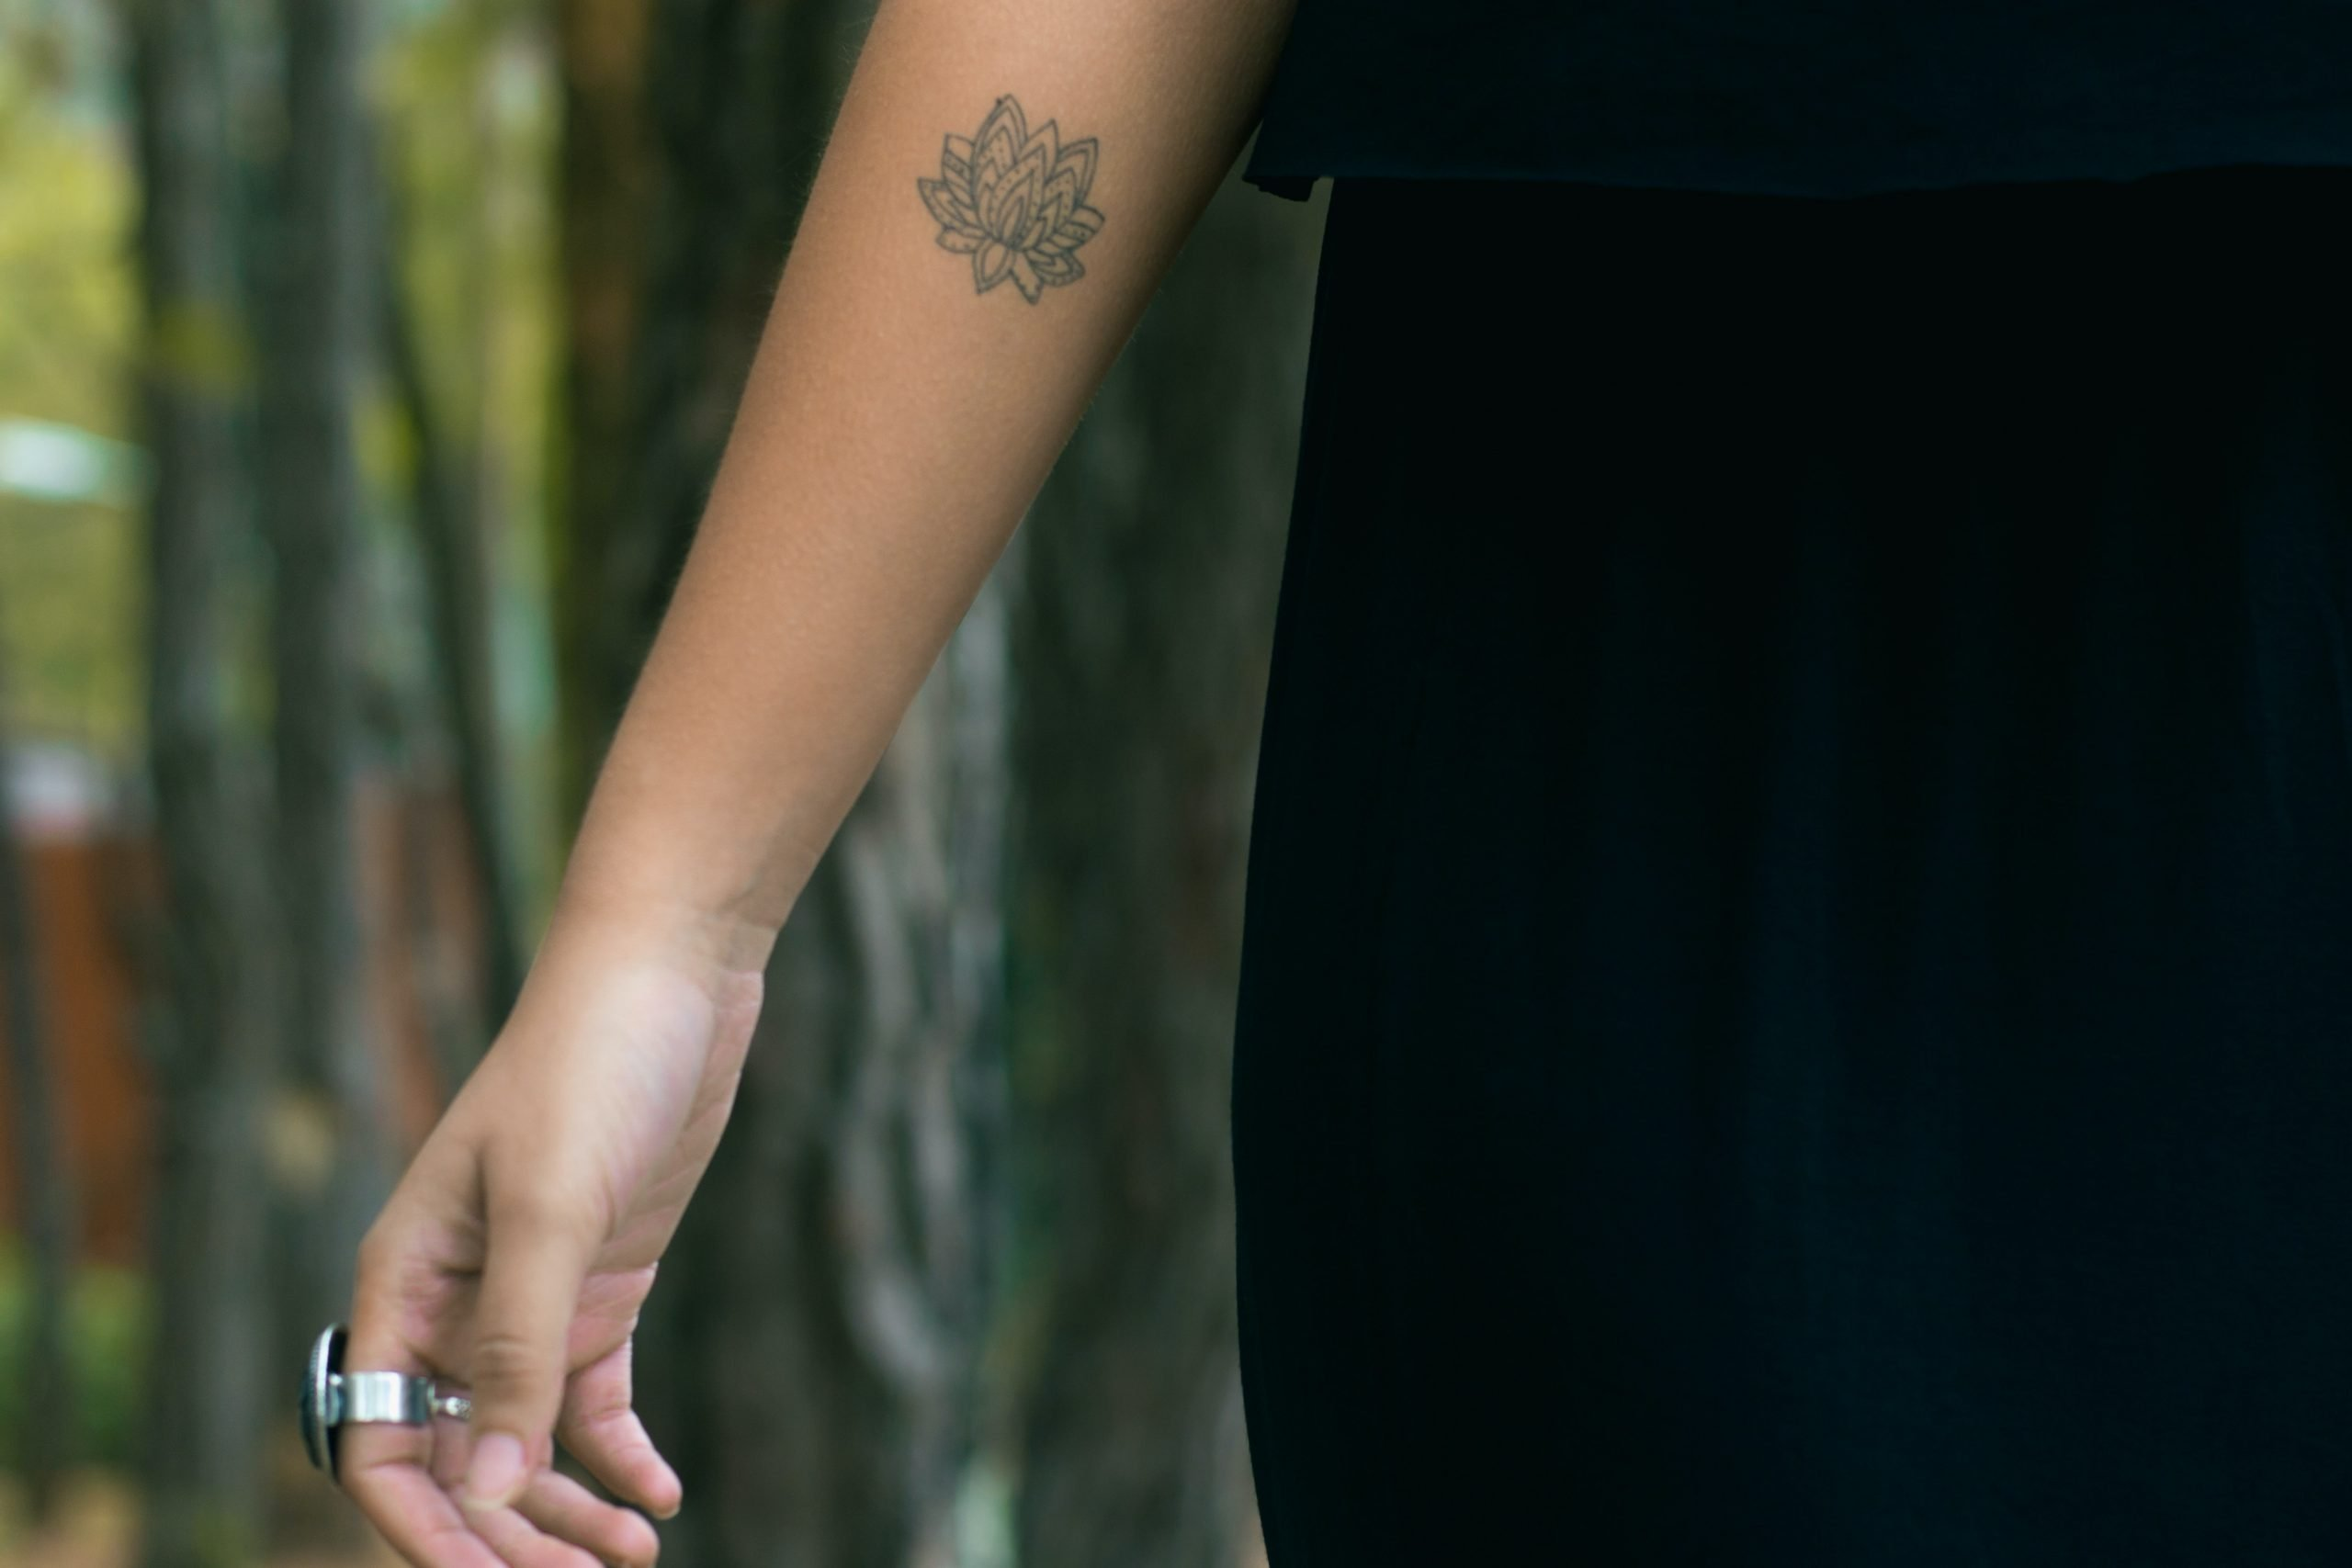 Four of the Best Small but Meaningful Tattoo Ideas   EUPHORIA.